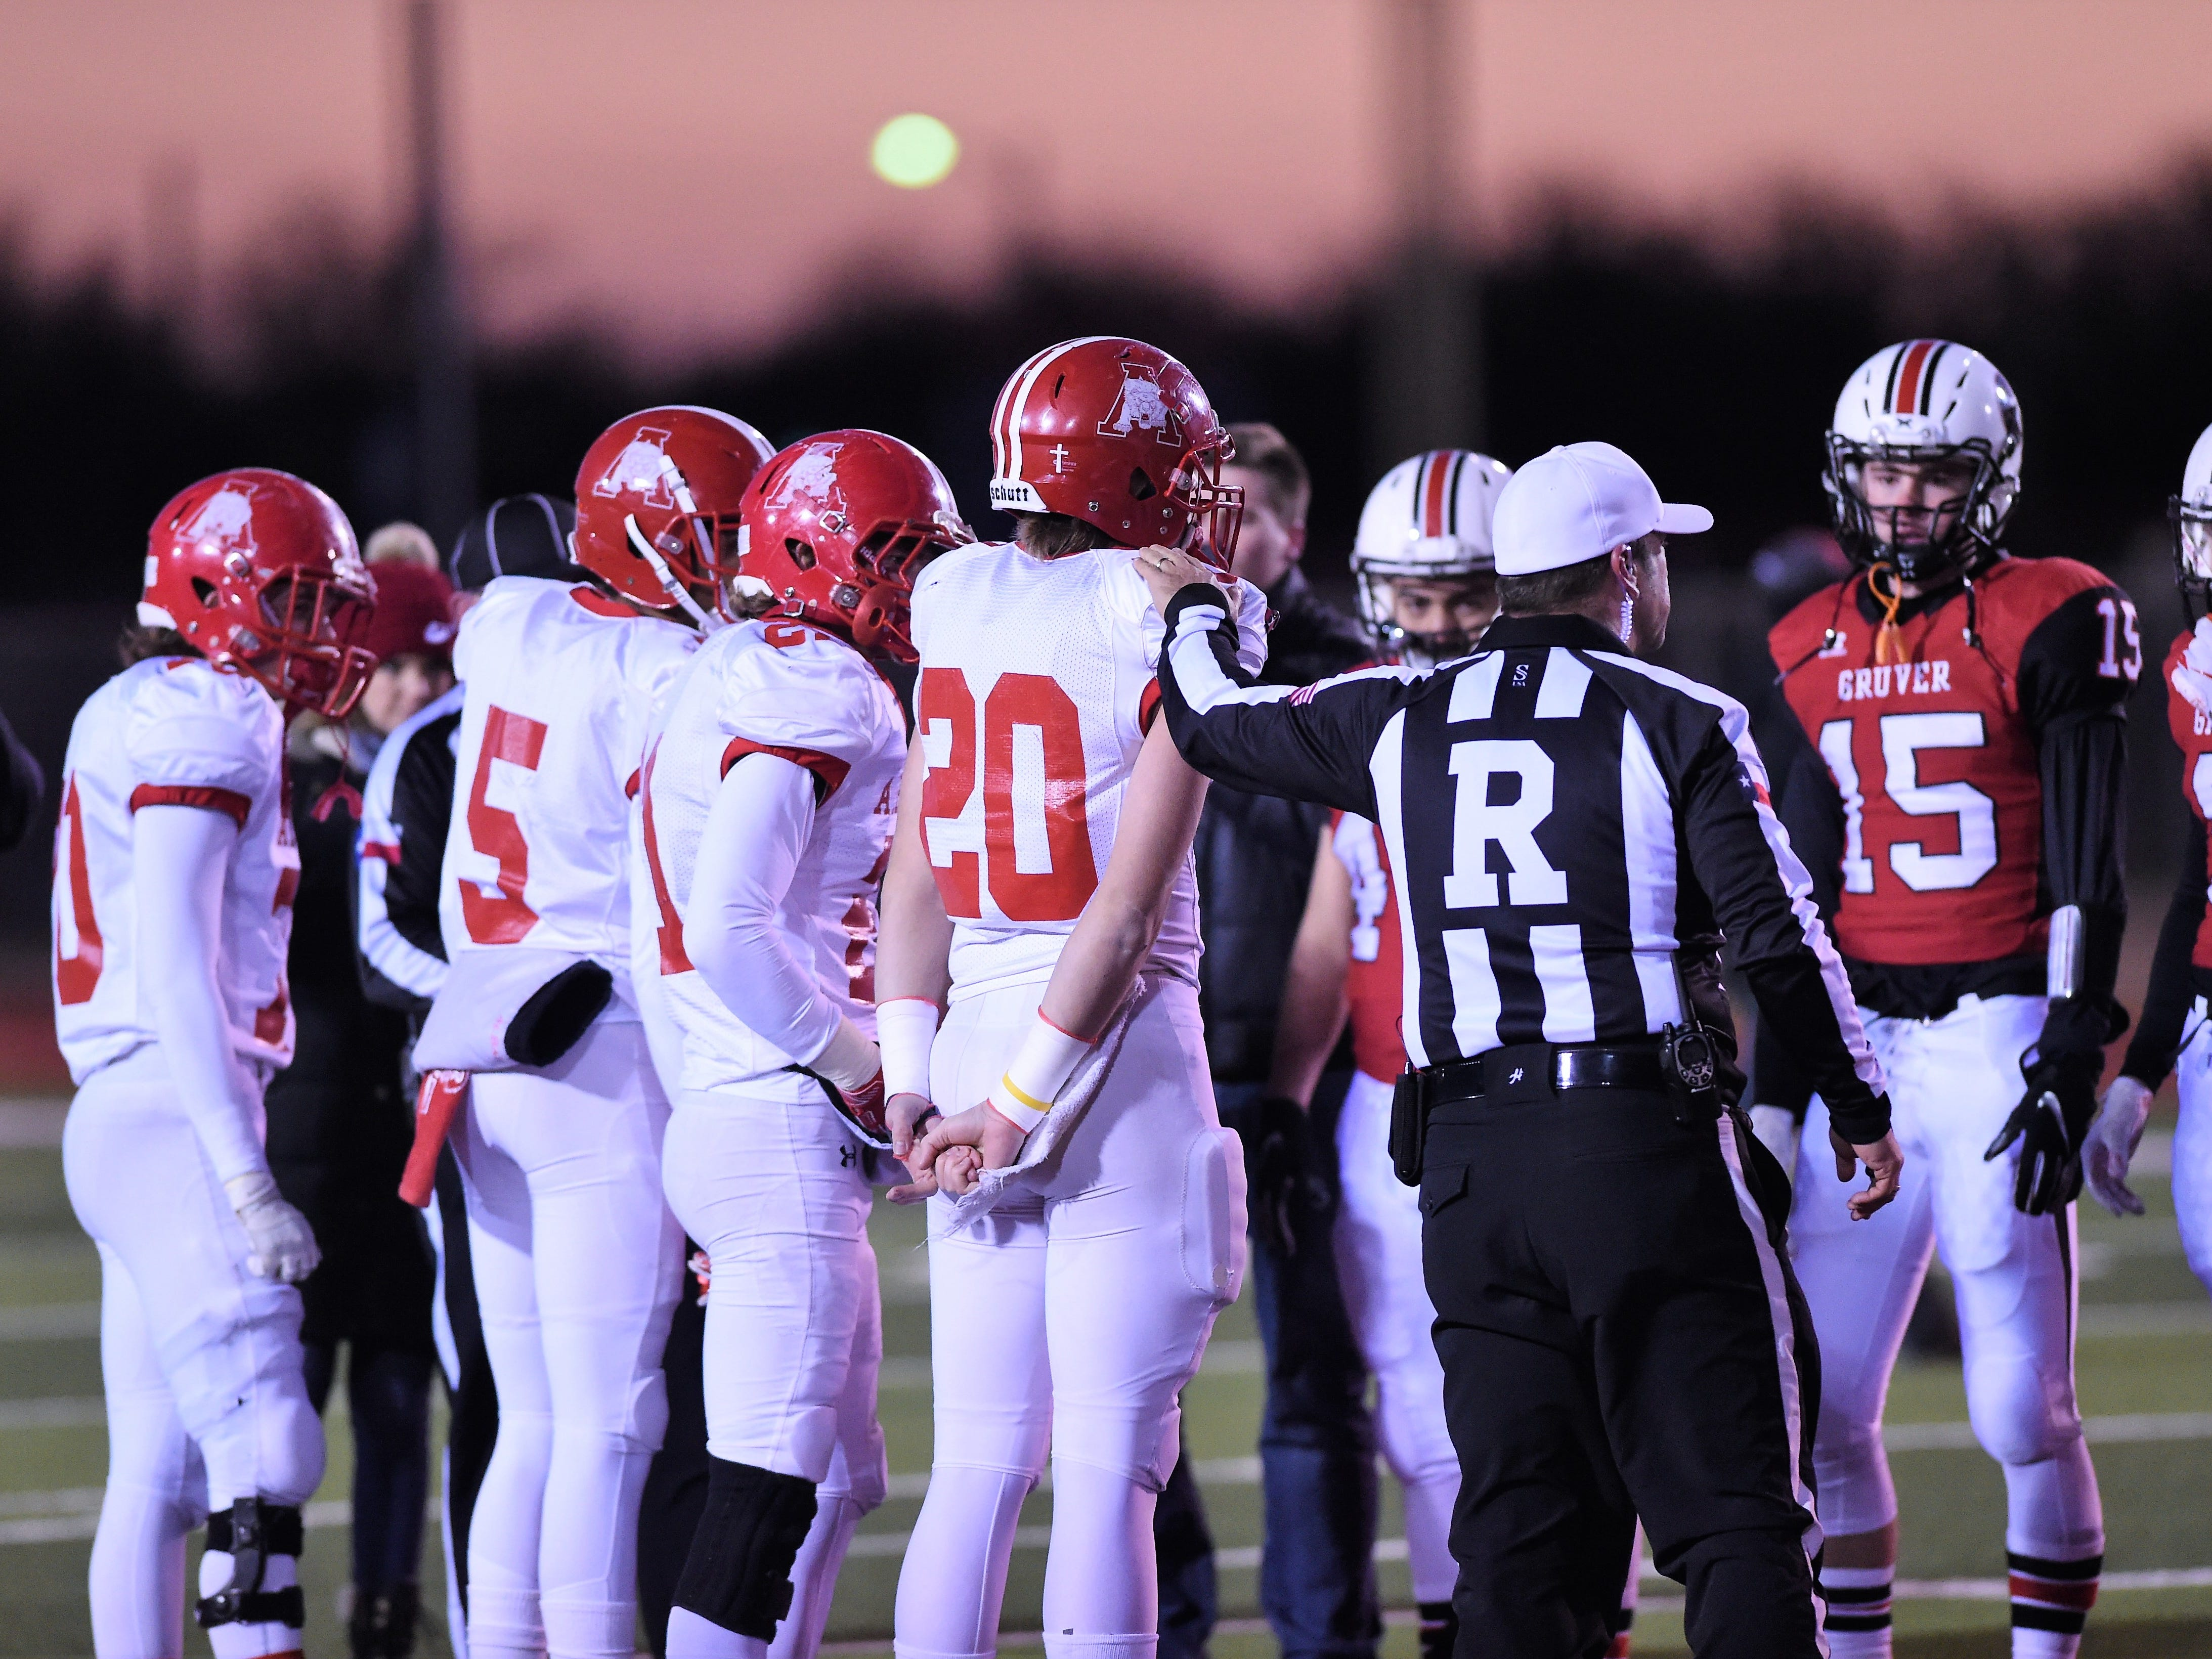 The referee indicates Albany won the coin toss against Gruver in the Class 2A Division II state semifinal at Sherwood Memorial Bulldog Stadium in Plainview on Thursday, Dec. 13, 2018.